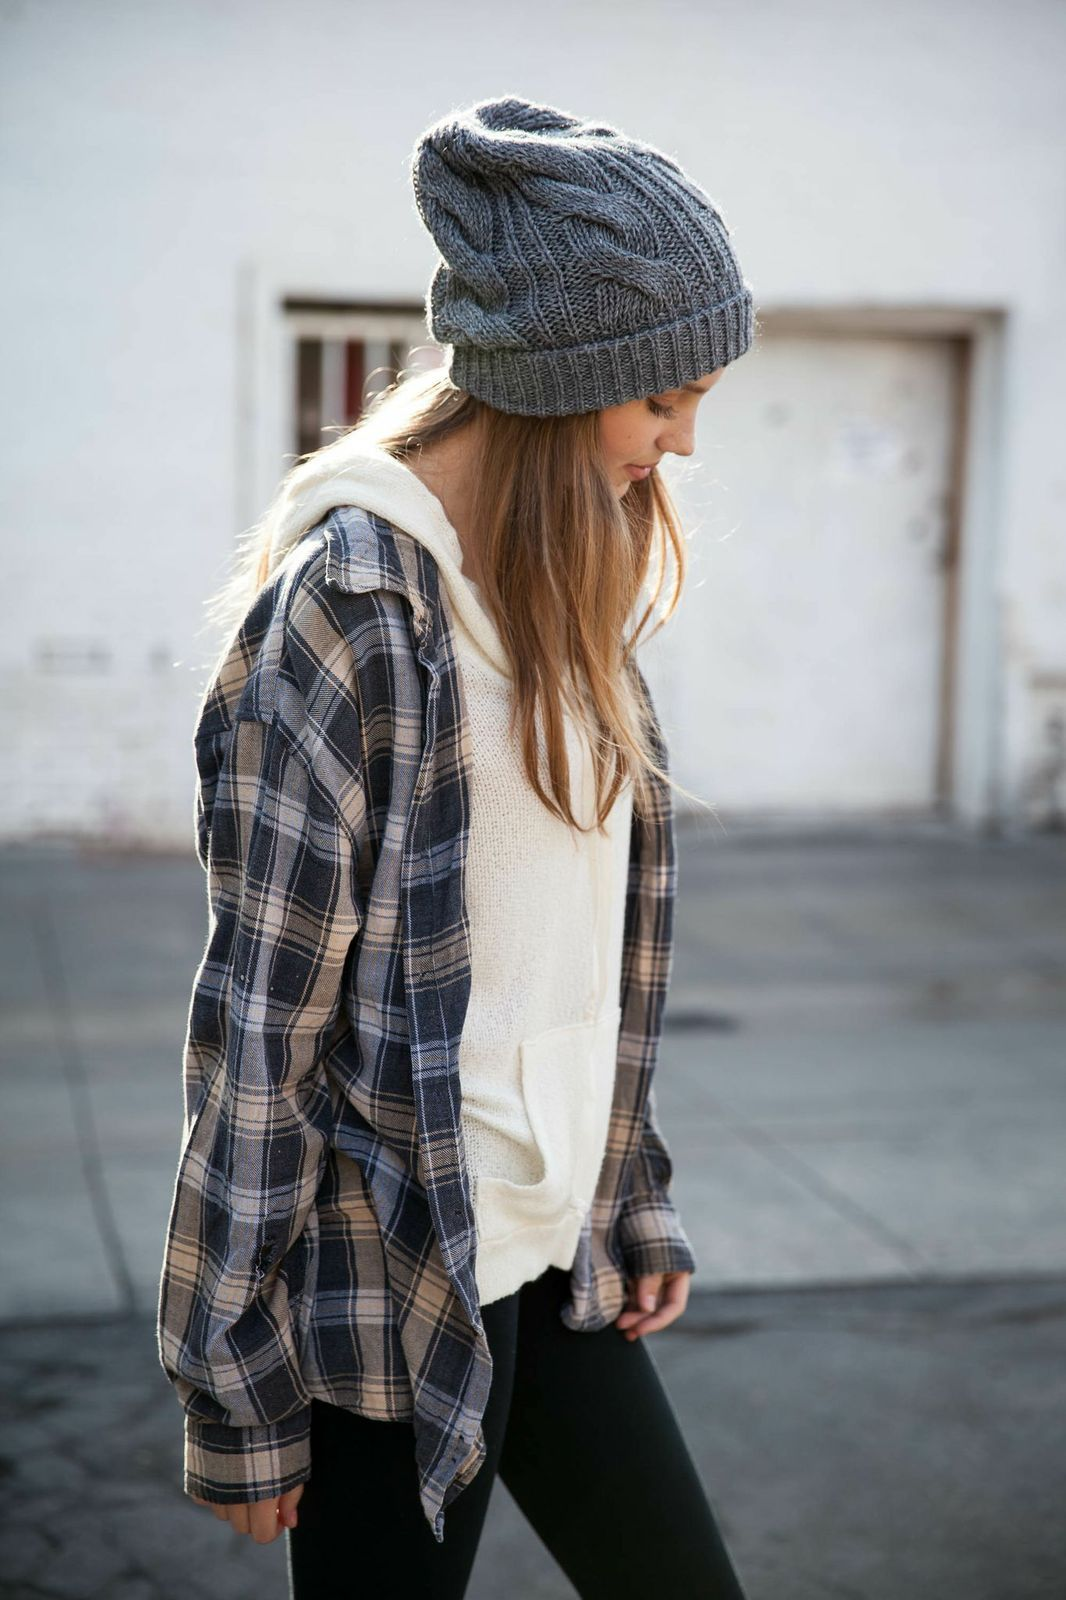 Flannel shirt trend  Pin by Raghd Ashour on Beanie Dreamy  Pinterest  Plaid Grunge and